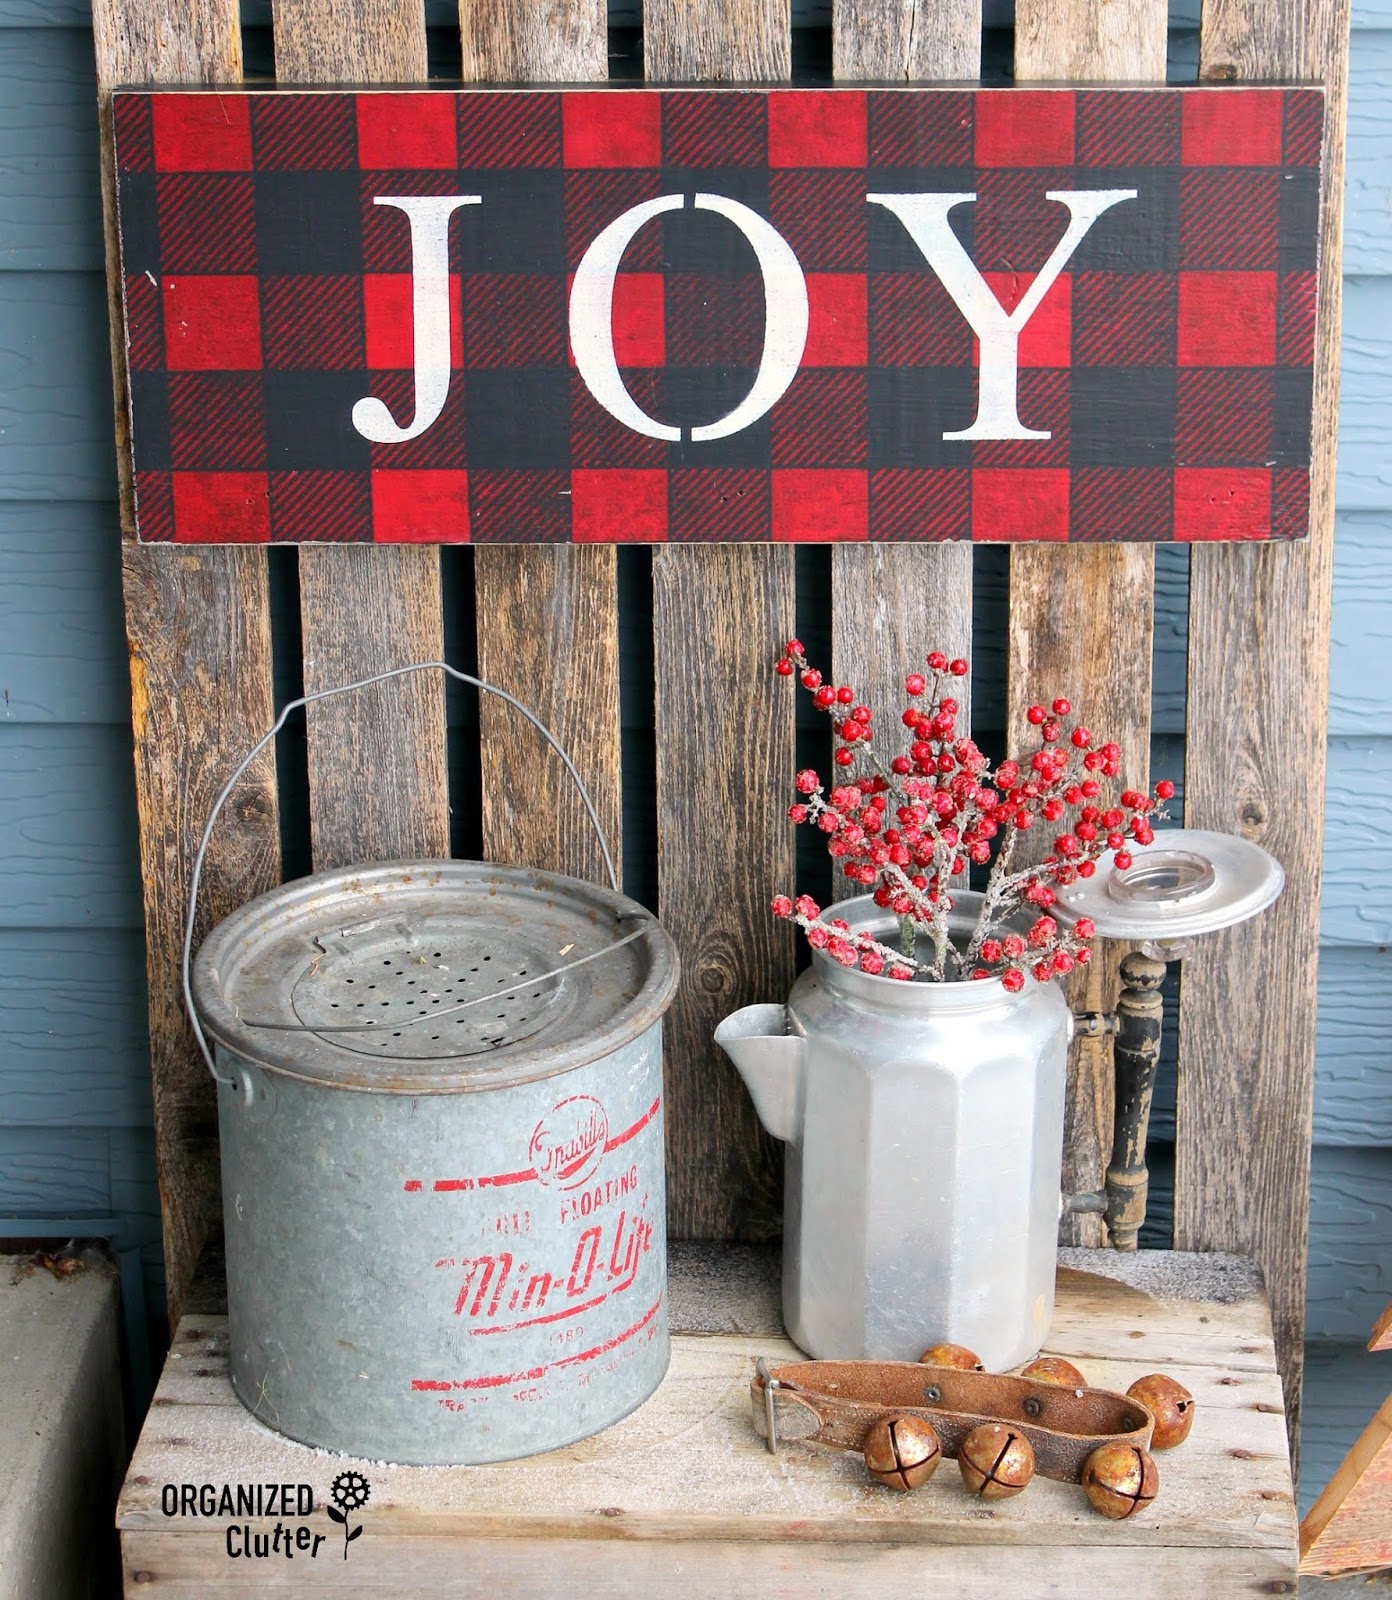 2018 Junky Rustic Christmas Outdoor Covered Patio Decor Organized